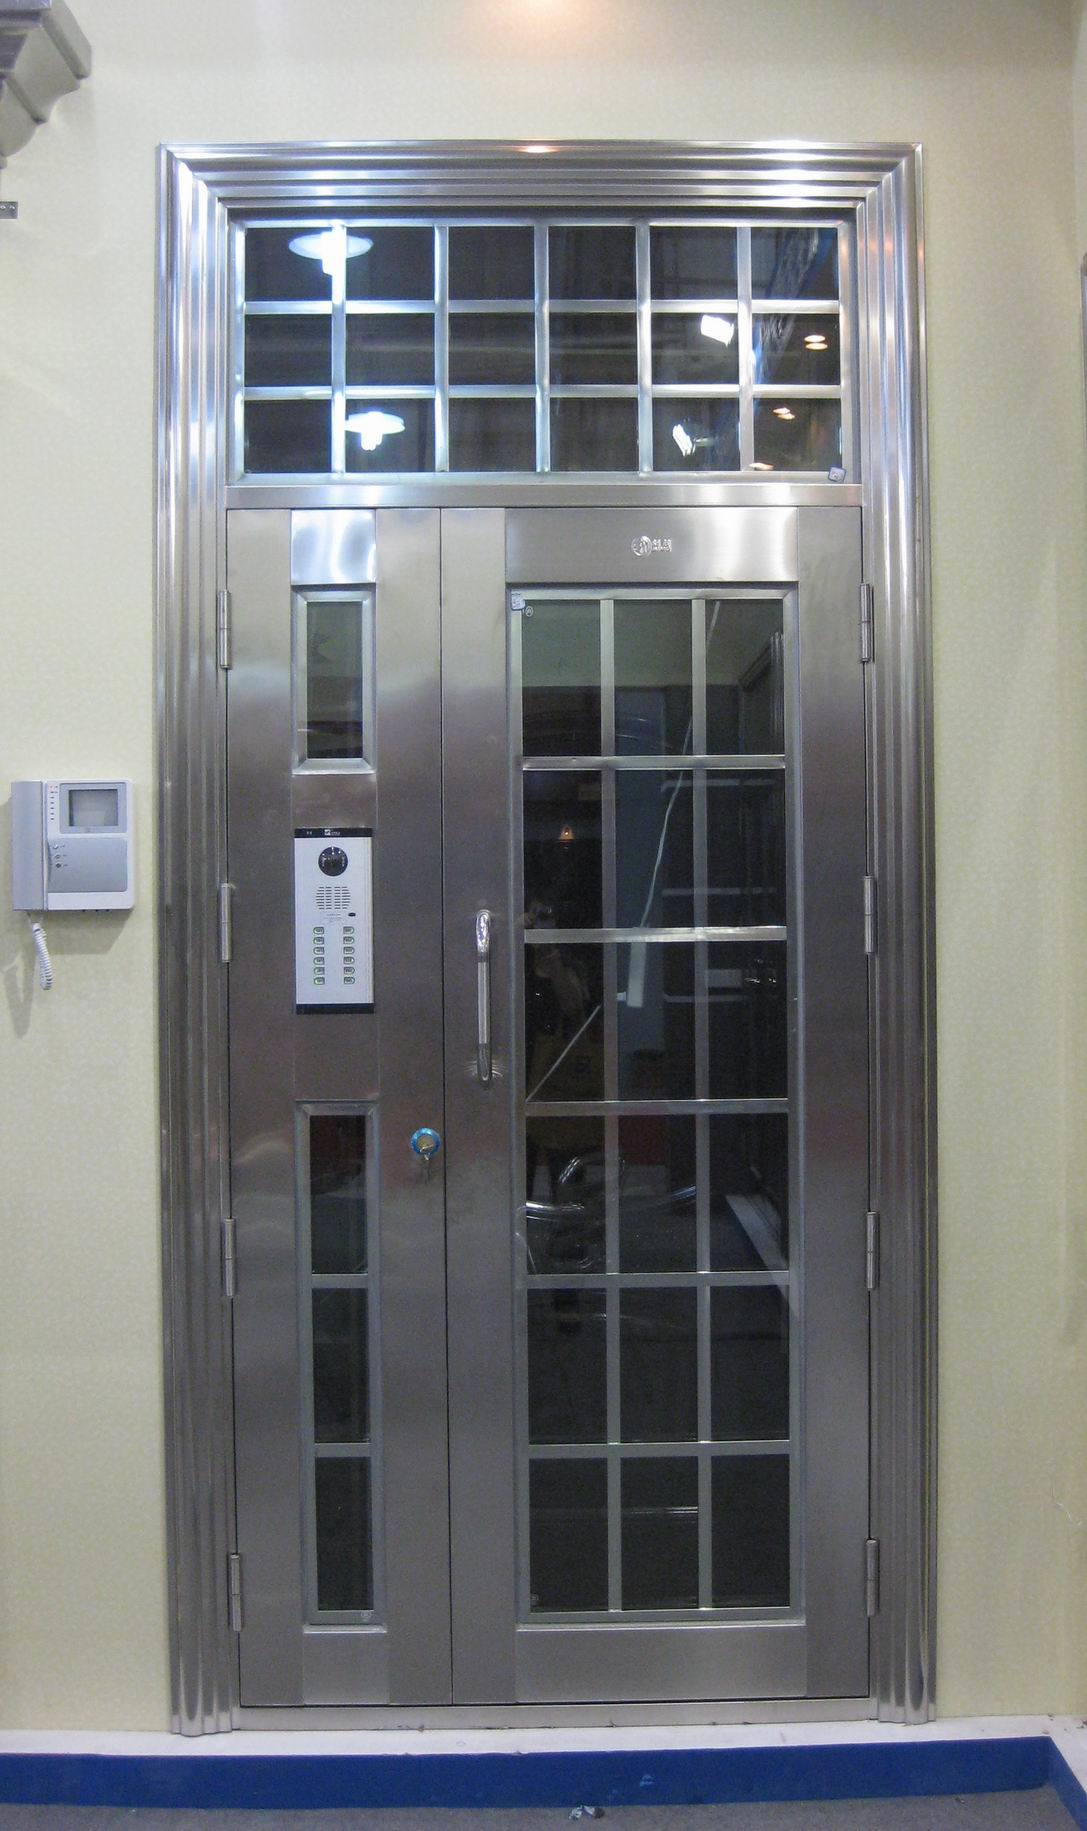 1831 #39435F  Stainless Steel Doors (AFOL S5022) China Security Door Steel Door save image Stainless Steel Entrance Doors 47371087